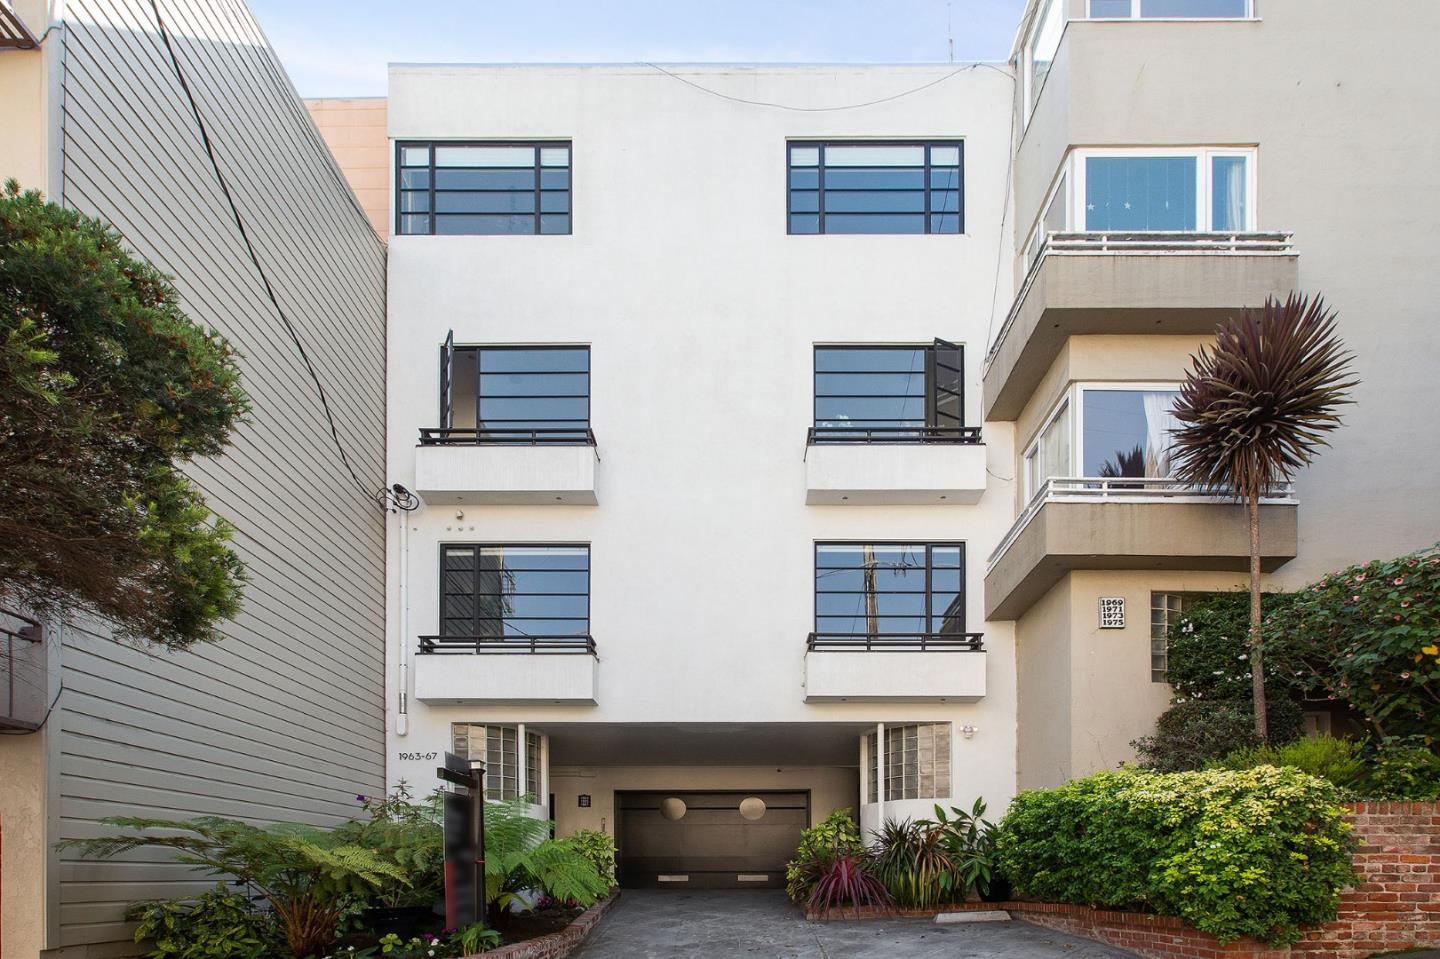 Rare opportunity to own a piece of Pacific Heights! Enjoy a newly remodeled, light-filled studio in a boutique 4-unit 1938 Art Deco building. Perfect for a city dweller to call home or pied a terre amongst the most luxurious areas in San Francisco. An open-concept floor plan with contemporary interior finishes and a patio overlooking the serene shared garden. Features hardwood floors, modern white-on-white kitchen with quartz countertops, eat-in with extended counters, updated appliances, convenient in-unit laundry, multiple built-in storage spaces, customizable walk-in closet, full bathroom, recessed lighting, and top-down bottom-up shades. Nestled in the most expensive district of San Francisco, this turn-key studio is 1/2 block to Lafayette Park and walking distance to CPMC Sutter Health, Whole Foods, and nearby local restaurants/nightlife/amenities.